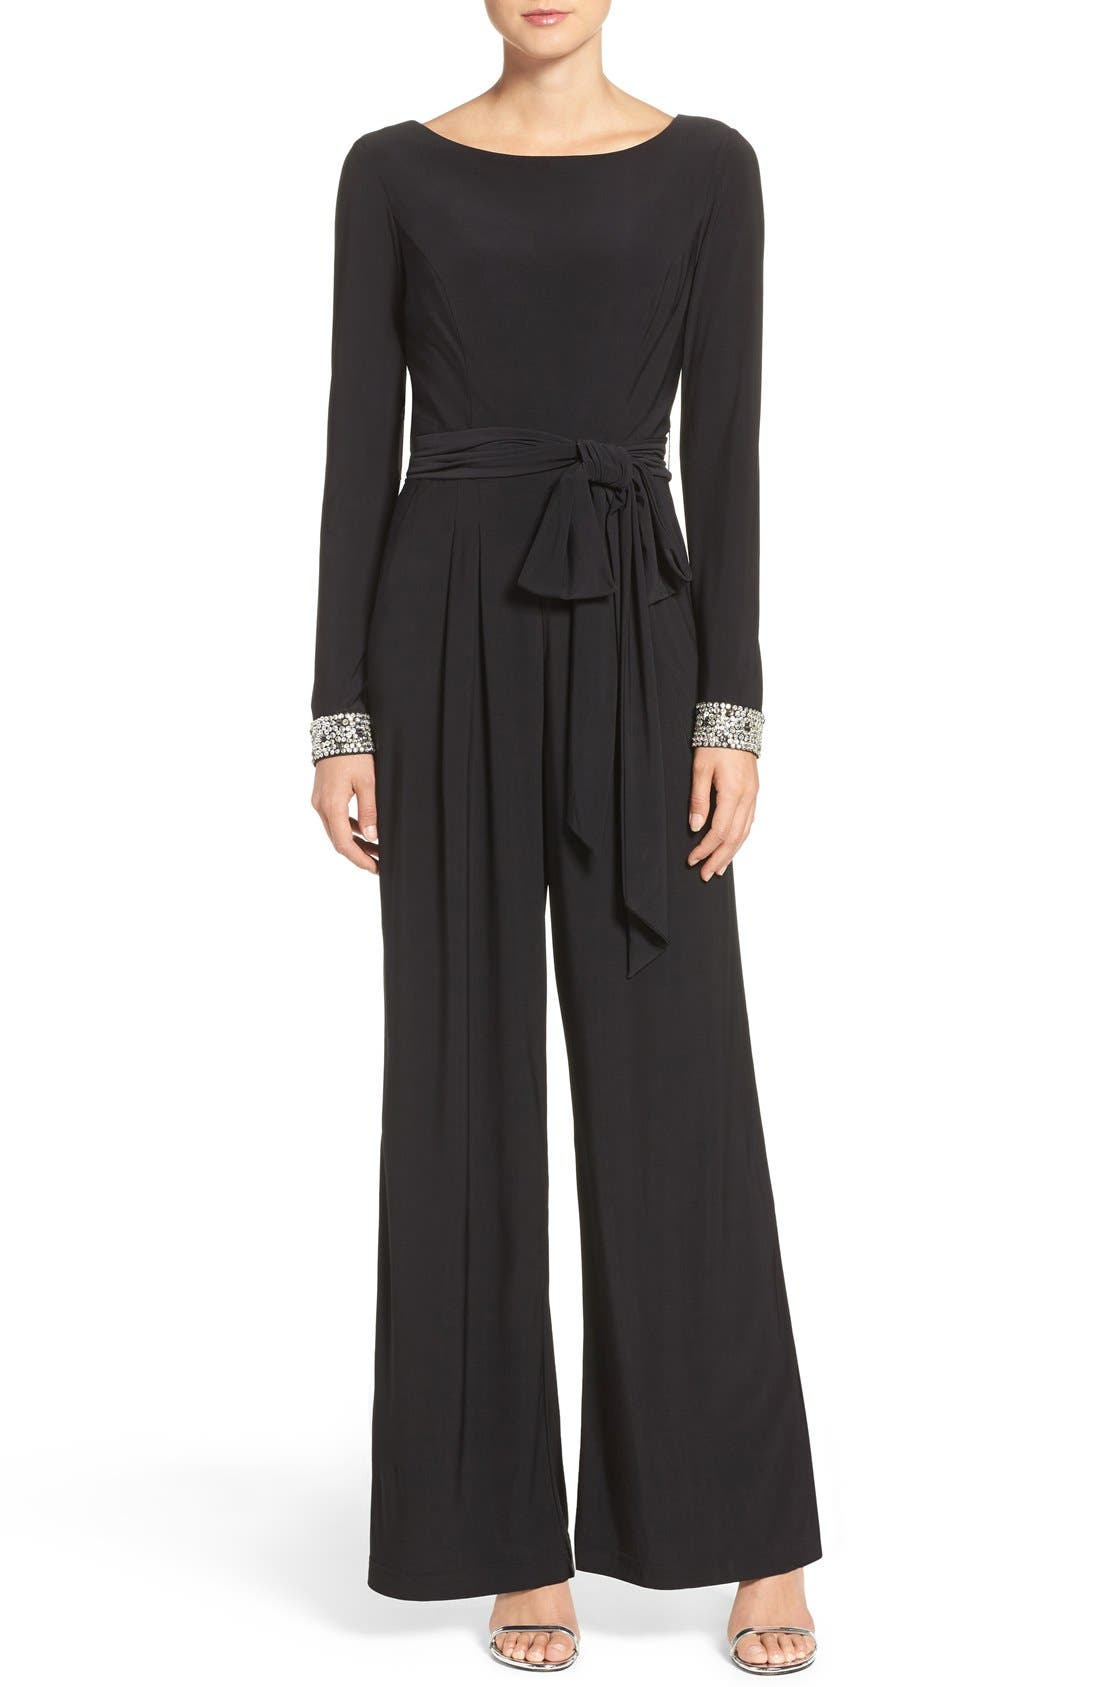 Alternate Image 1 Selected - Vince Camuto Embellished Wide Leg Jumpsuit